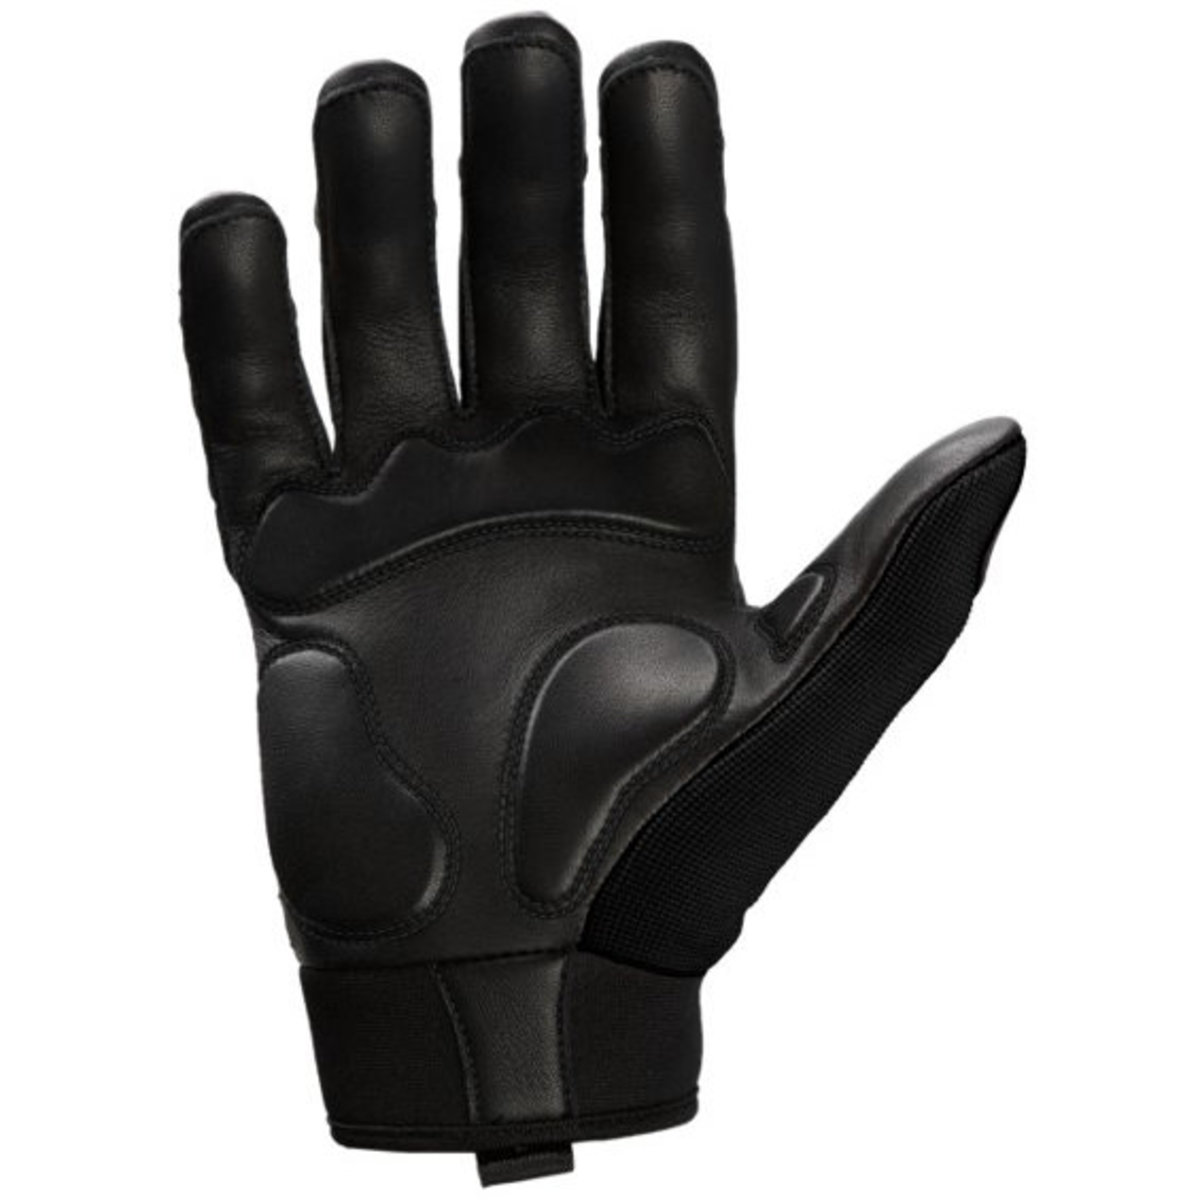 View a Larger Image of Brawny Plus Gloves, Black, XL